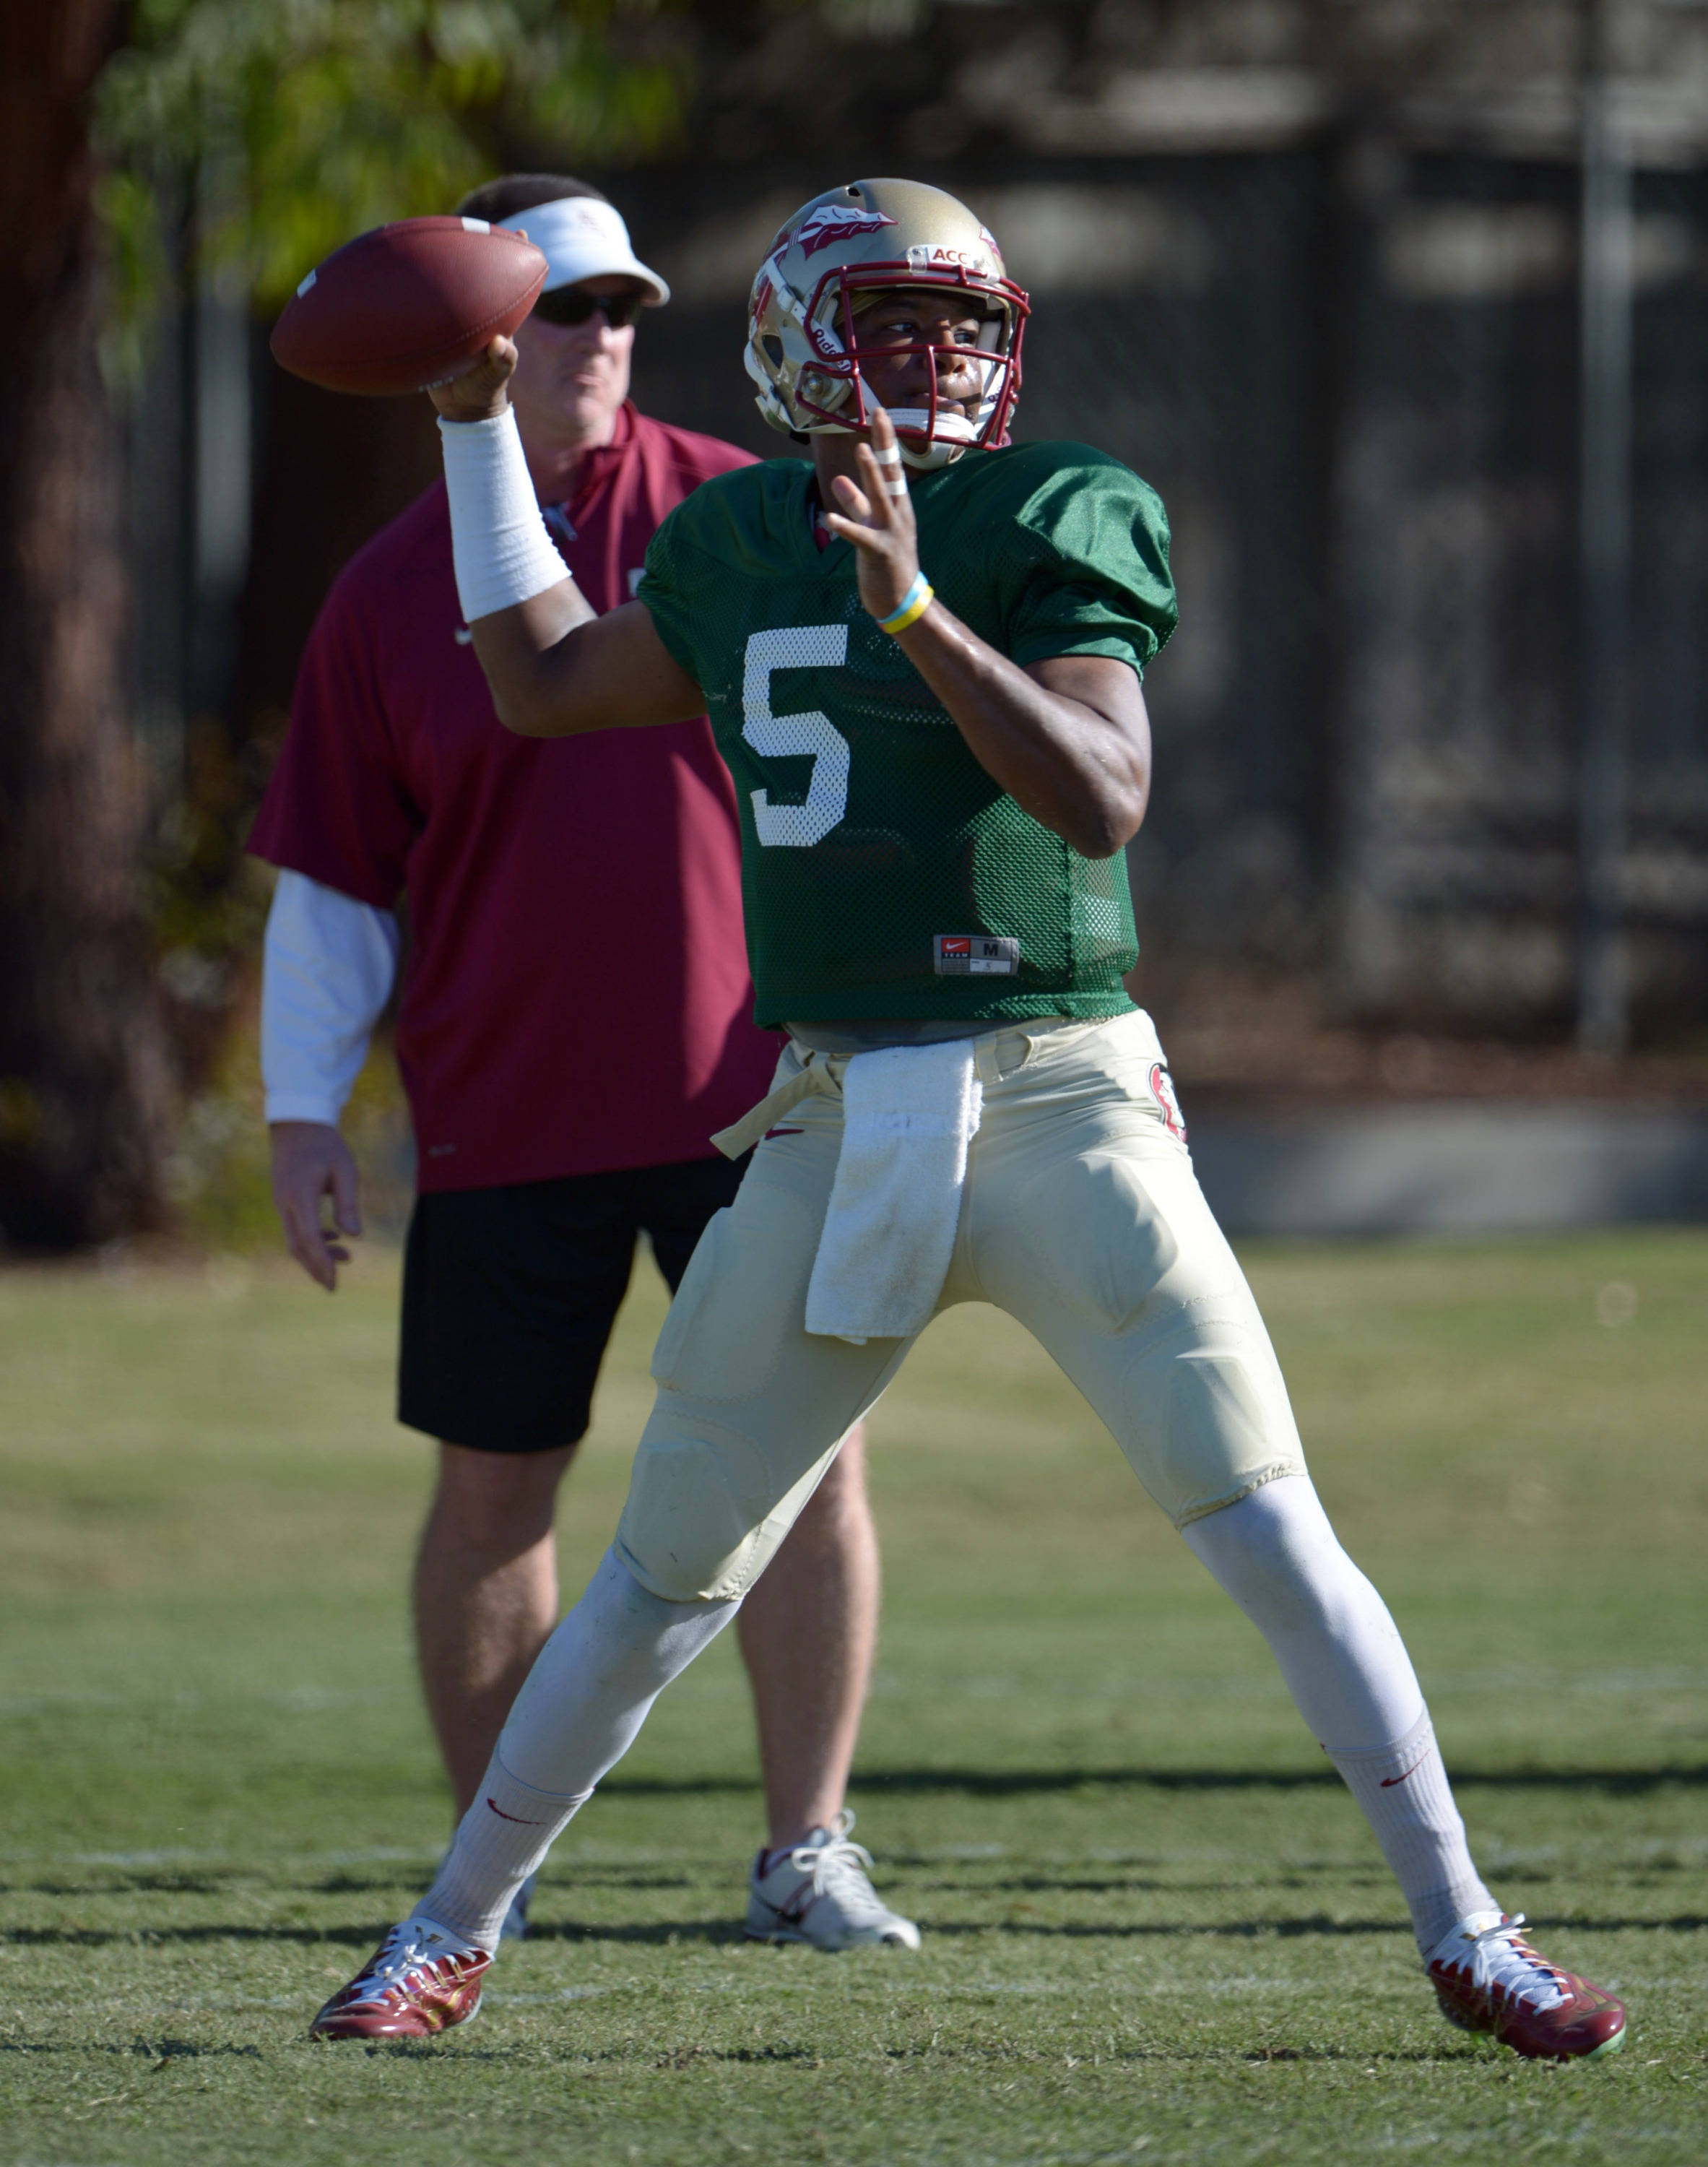 Florida State Seminoles quarterback Jameis Winston (5) throws a pass under the supervision of quarterbacks coach Randy Sanders at practice for the 2014 BCS National Championship. Mandatory Credit: Kirby Lee-USA TODAY Sports